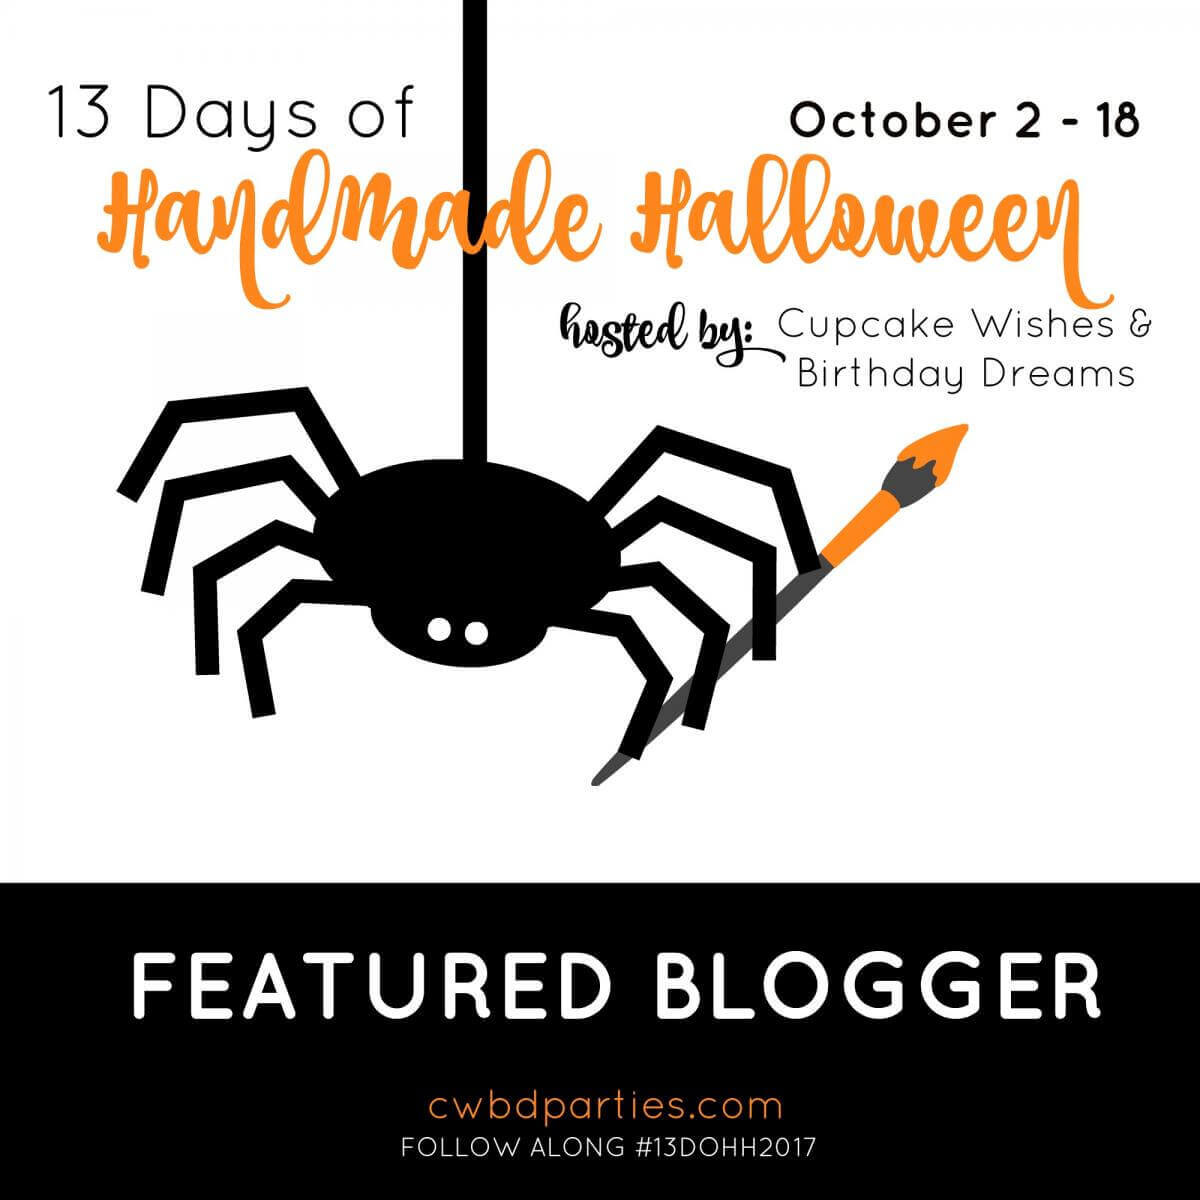 Illustration of a spider with a paintbrush, and text for the 13 days of Handmade Halloween Blog Hop.